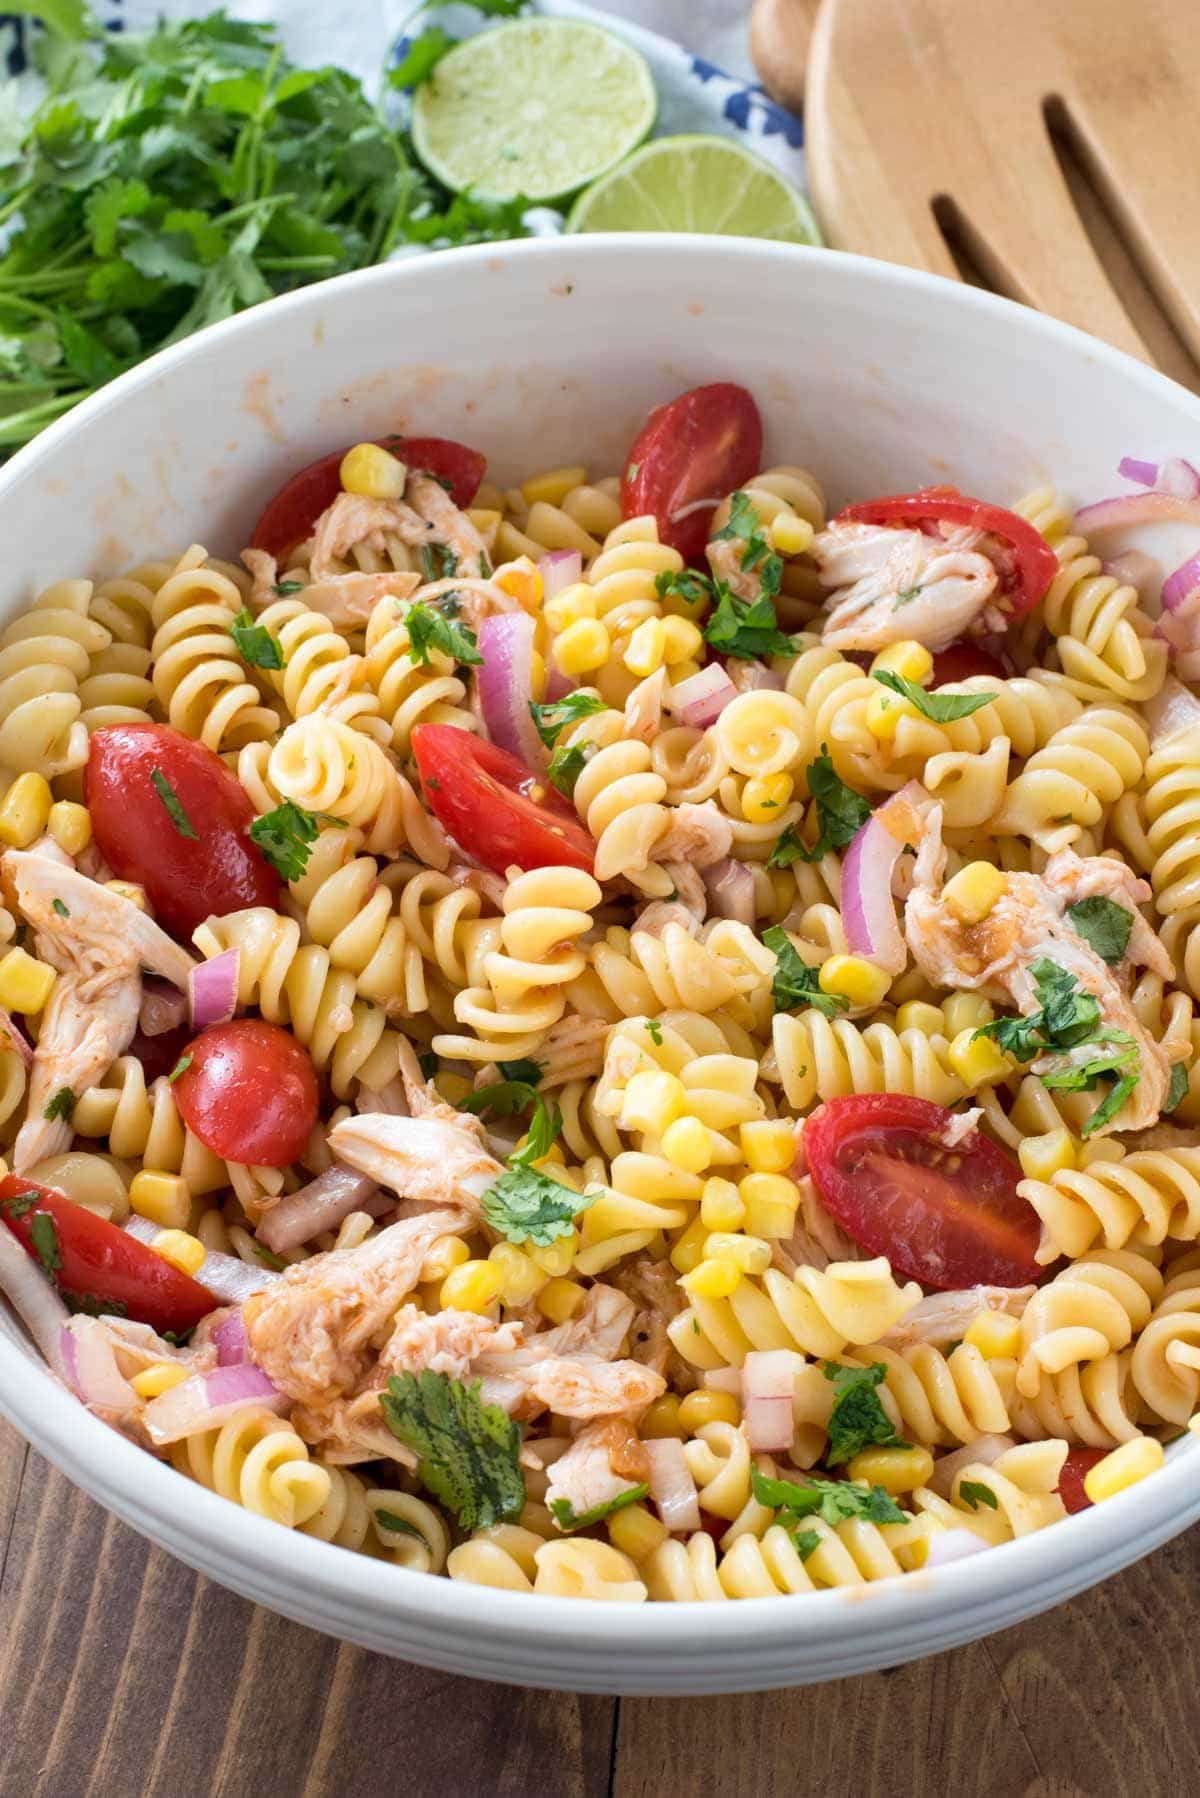 How To Cook Macaroni Chicken Salad